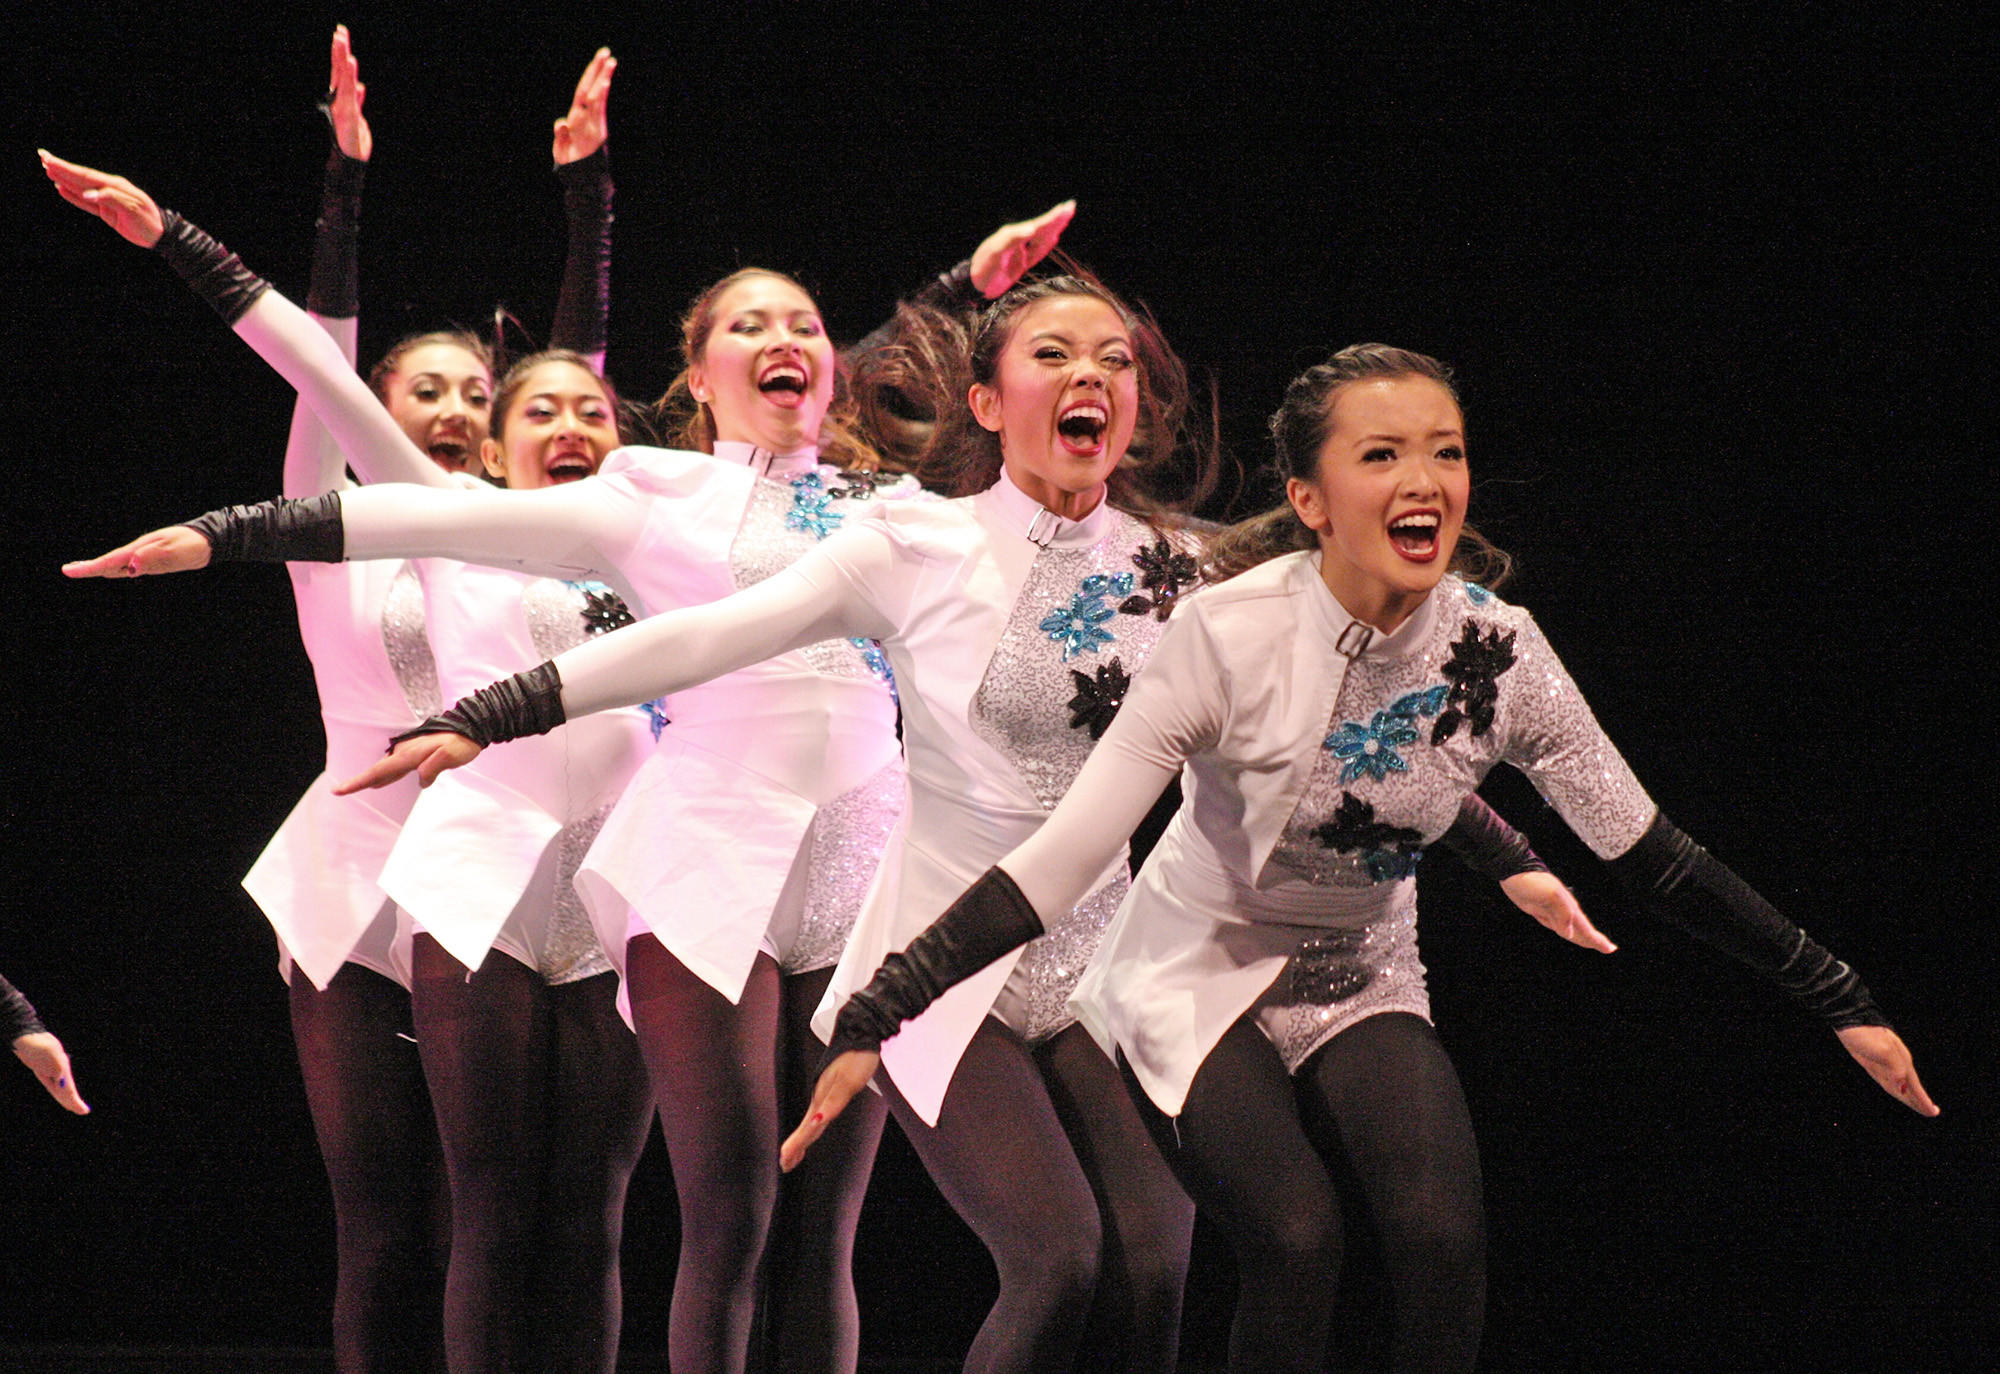 Glendale High's small military squad performs during Glendale High's Dance Revue, held April 17 and 18. Pictured from left, Alyssa Cancilla, Faith Garcia, Sandra Vasquez, Lara Singzon, Amber Borillo.